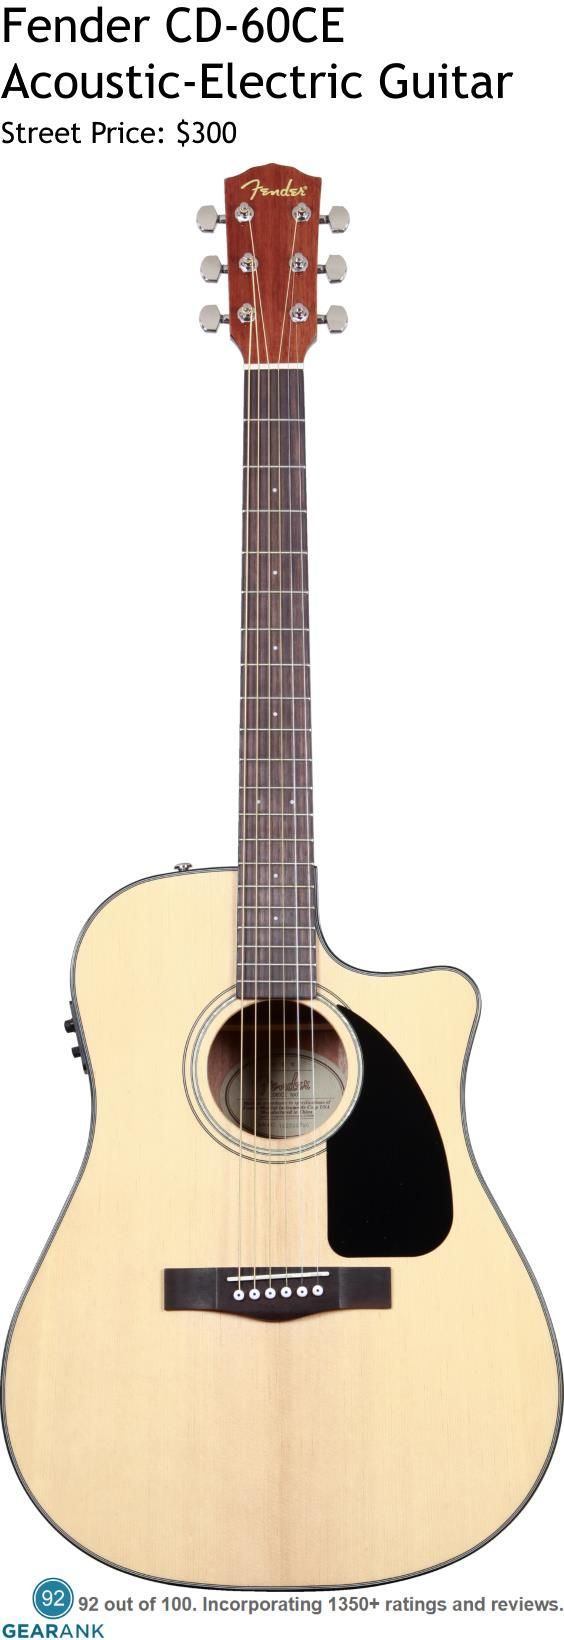 Fender CD-60CE Acoustic-Electric Guitar.  It has a laminated Spruce top with laminated Nato back and sides.  The electronics are the Fishman Isys III System with Active On-Board Pre-Amp and Tuner.  For a Detailed Guide to Acoustic Guitars see https://www.gearank.com/guides/acoustic-guitars